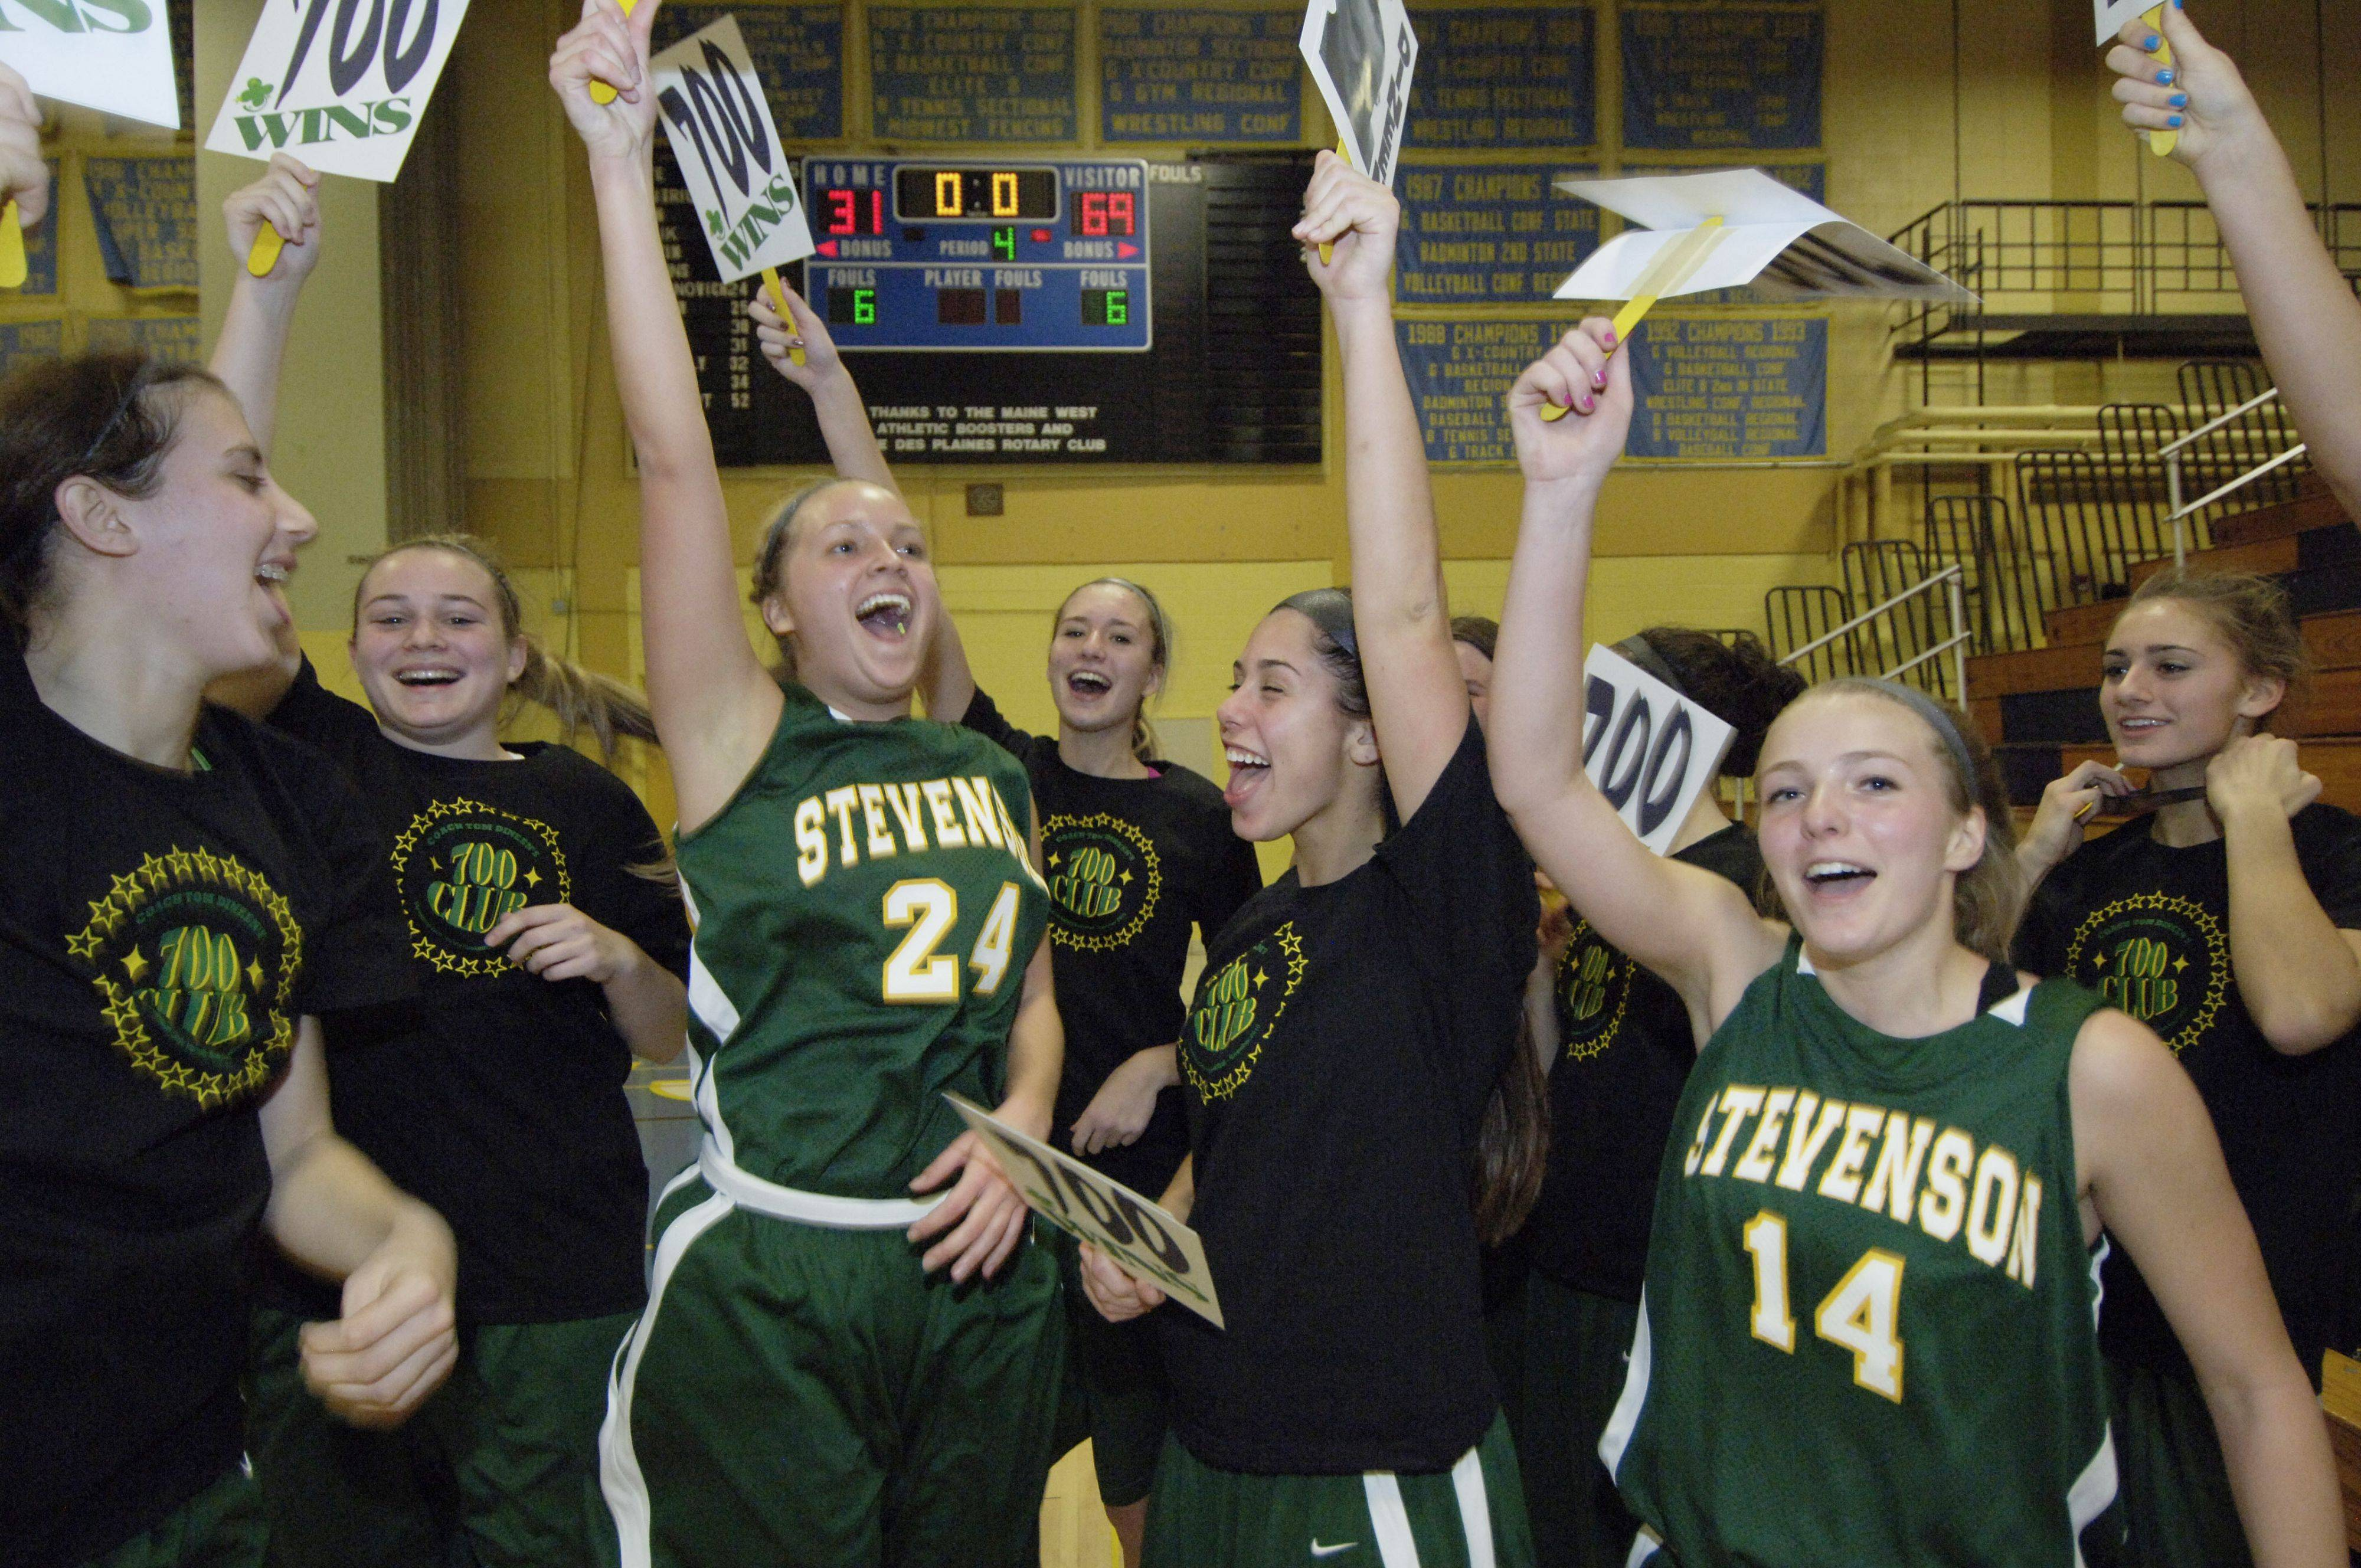 The Stevenson girls basketball team celebrates as their coach, Tom Dineen, reached 700 career wins defeating Maine West Wednesday.